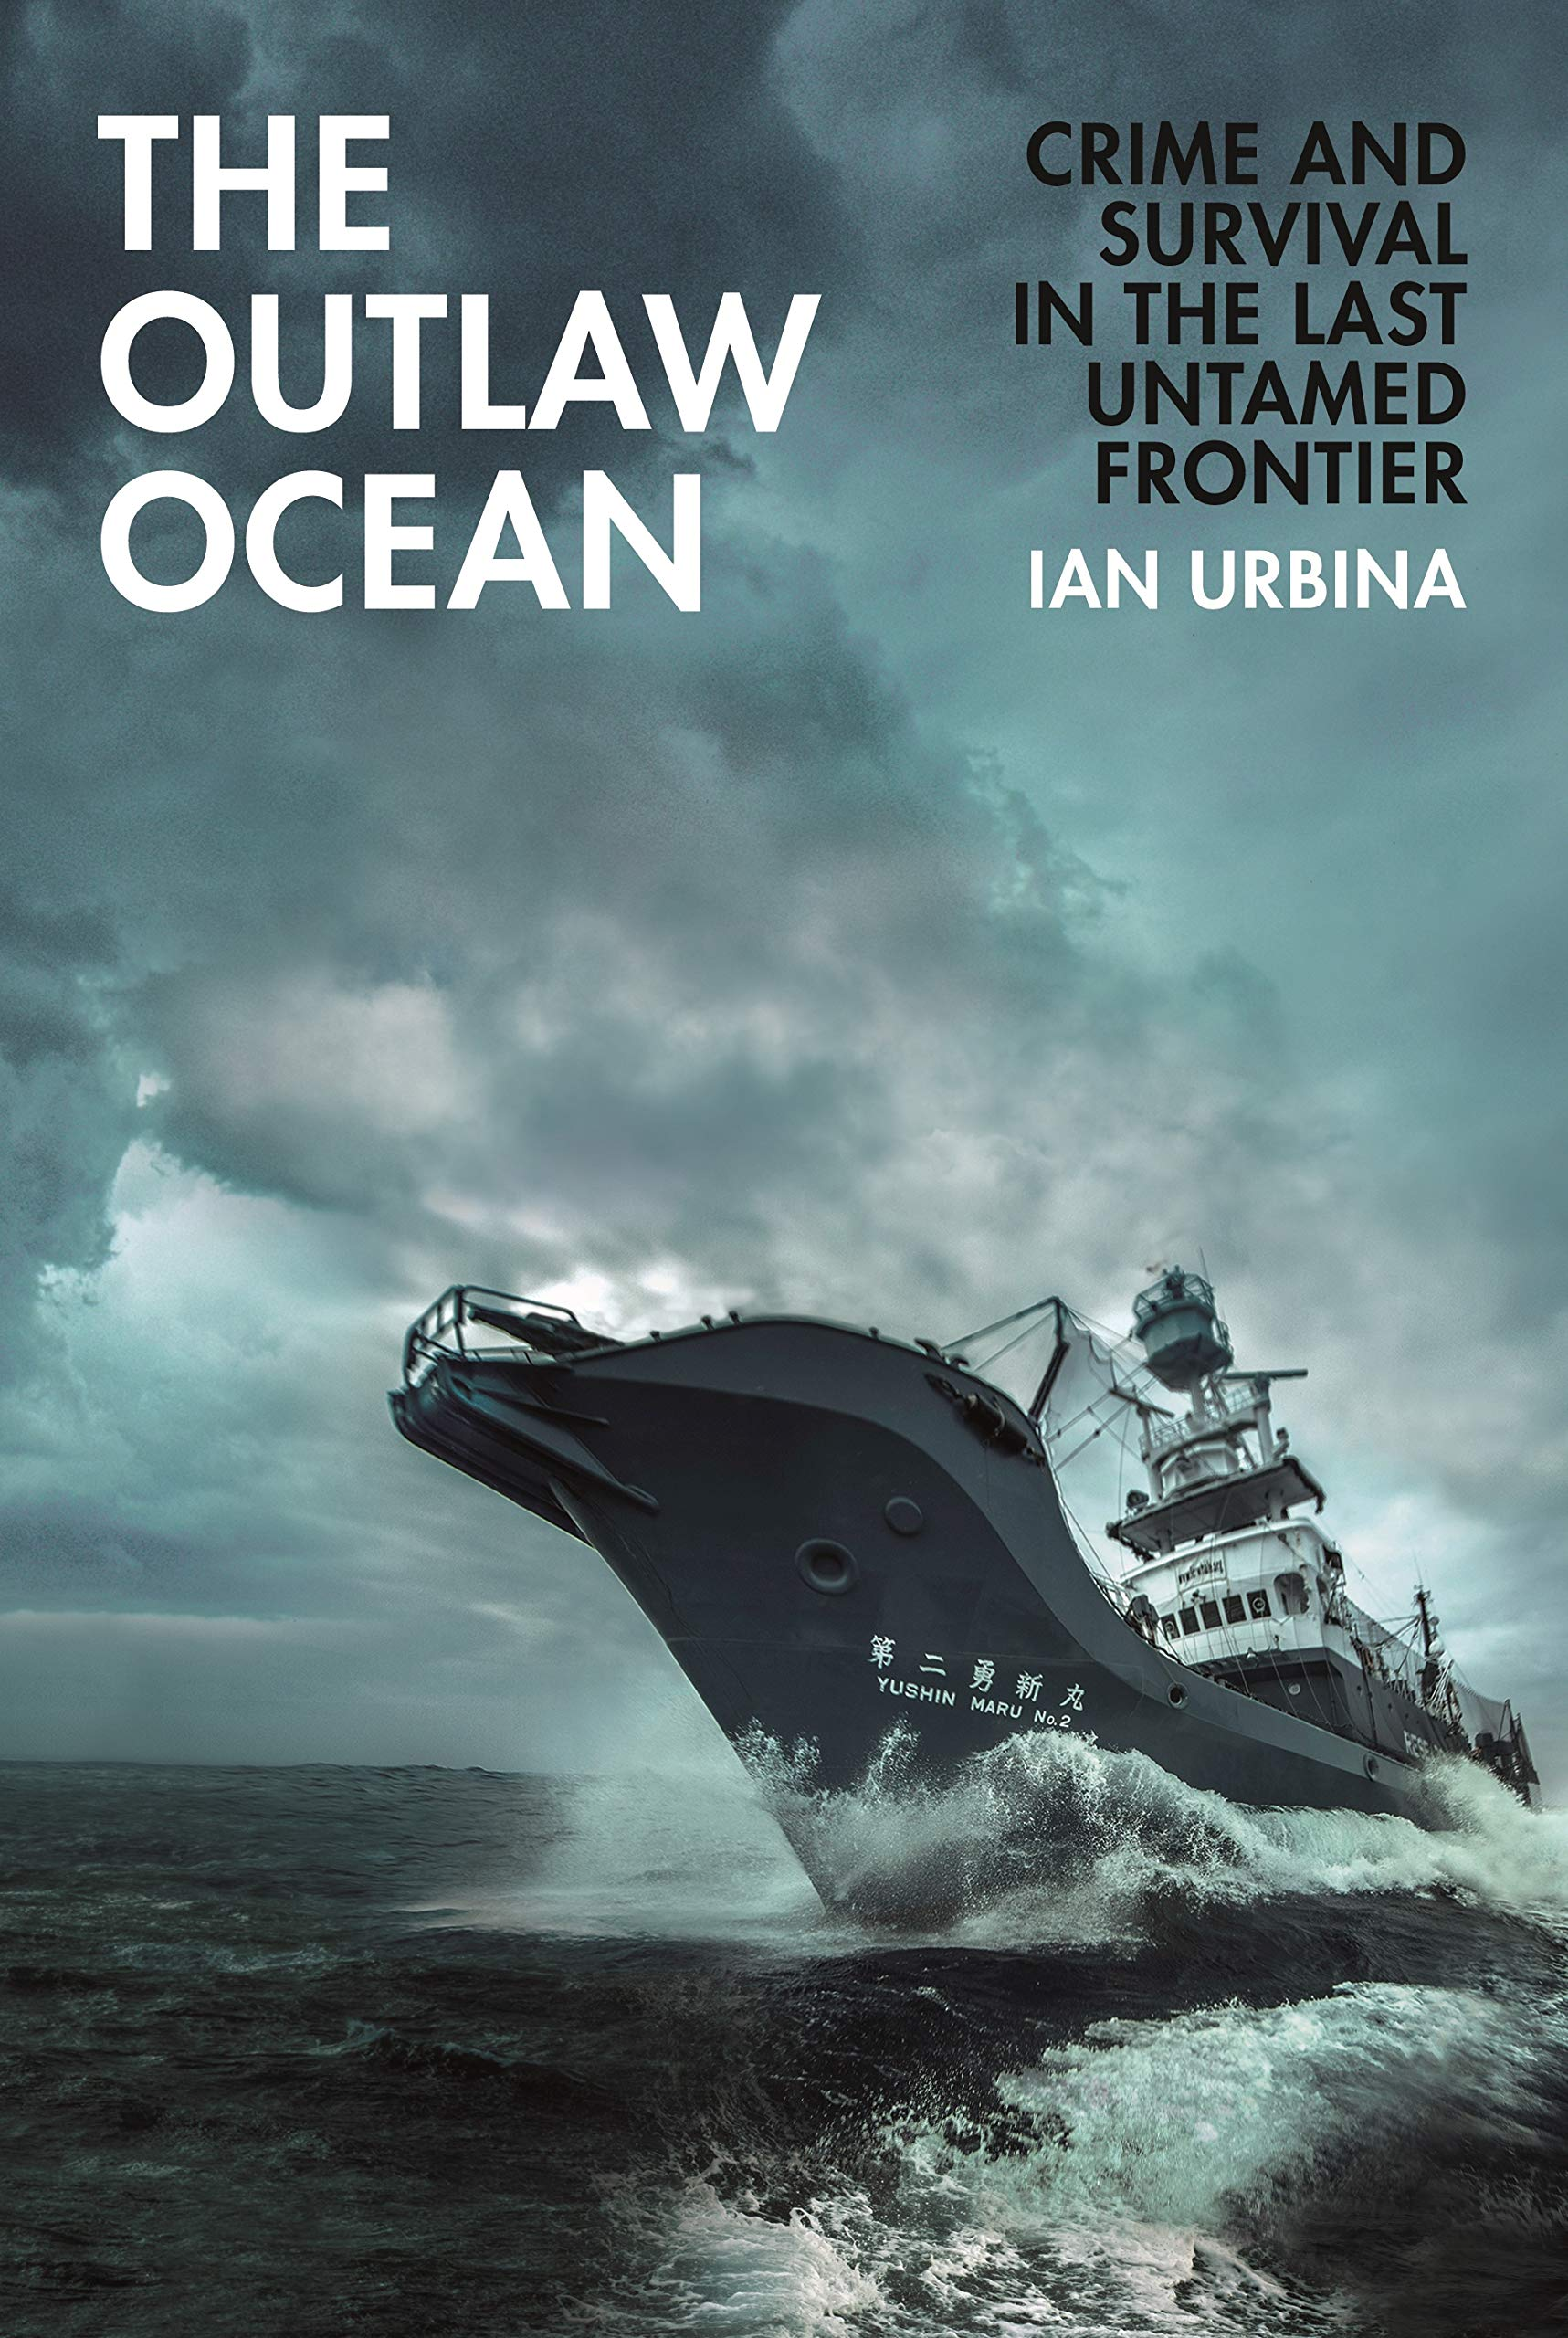 The Outlaw Ocean: Journeys Across the Last Untamed Frontier  By Ian Urbina Knopf, 2019